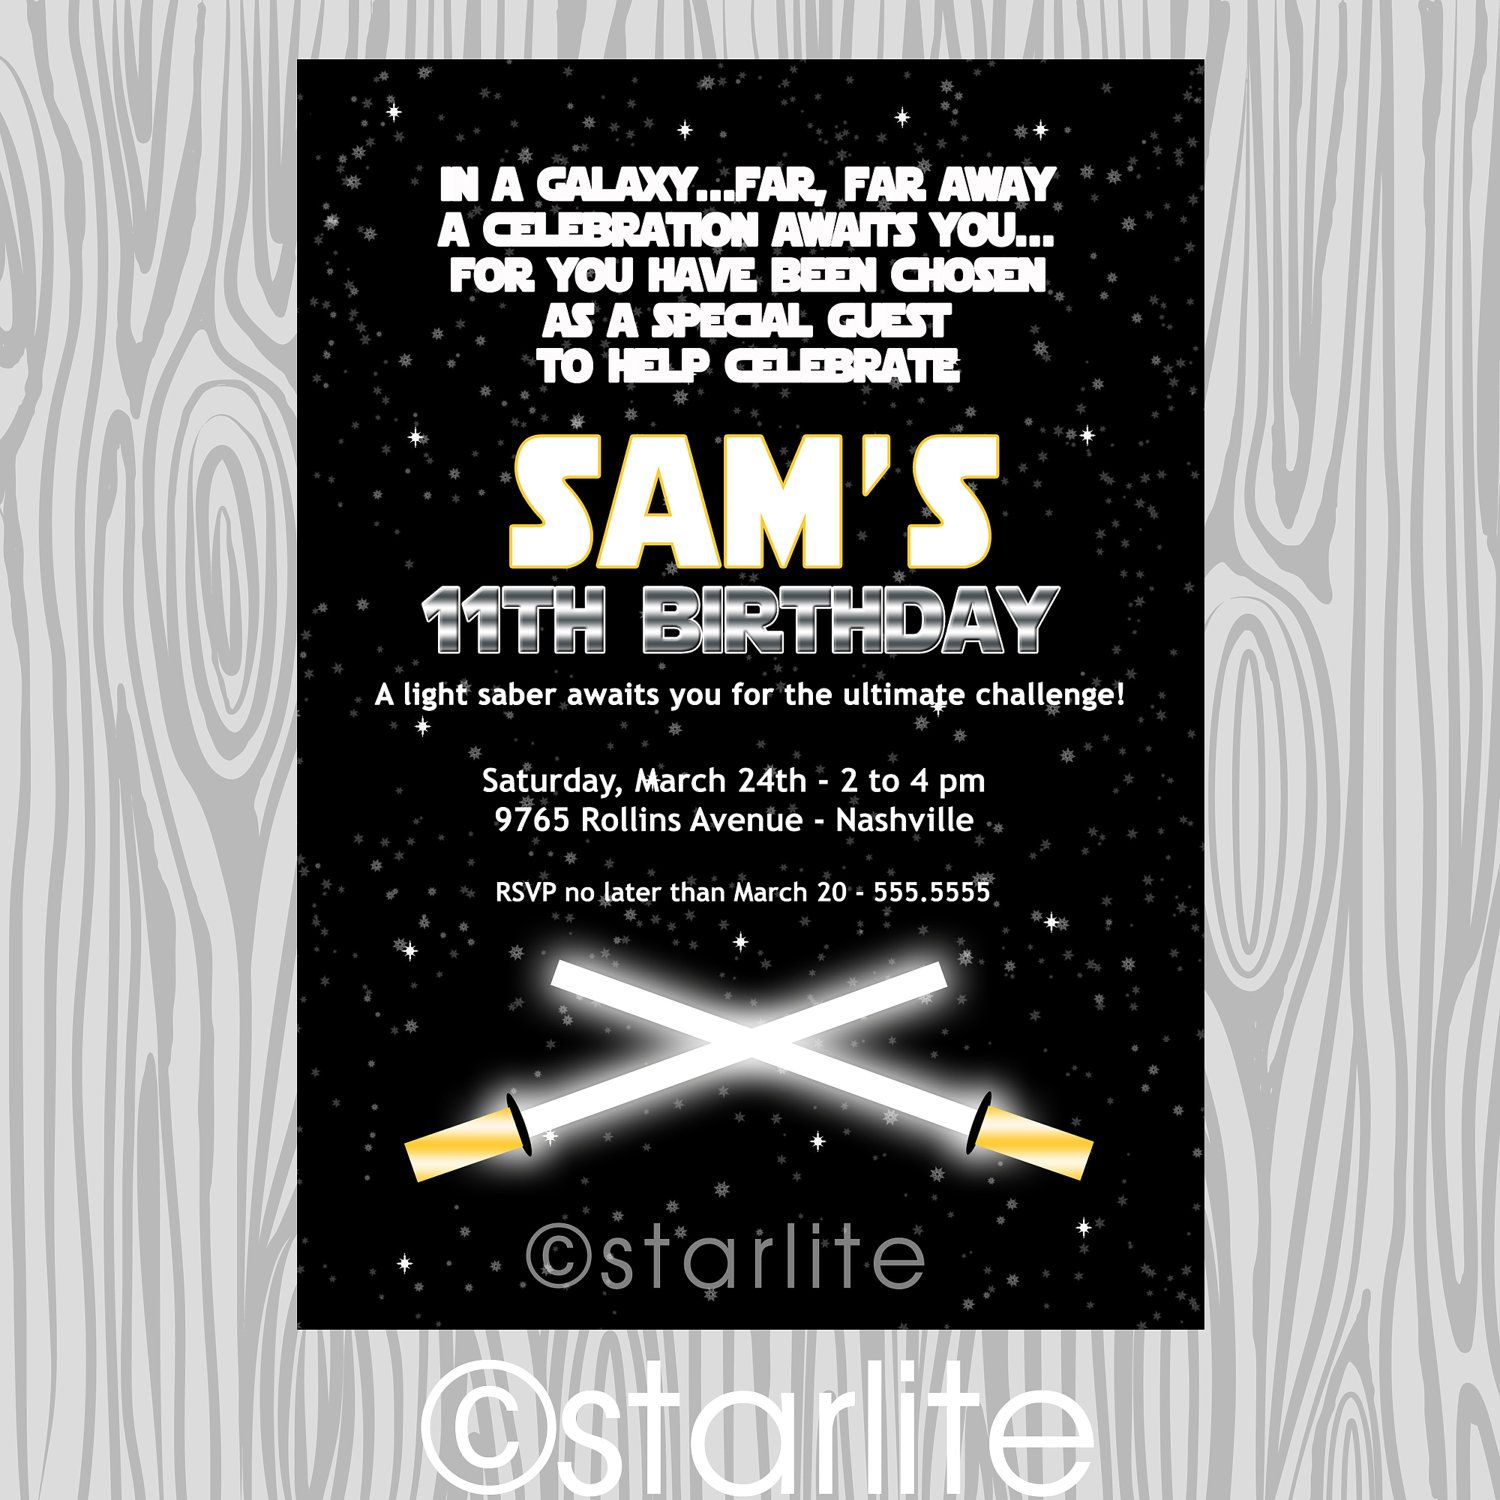 Star Wars inspired - star wars theme birthday party invitation ...